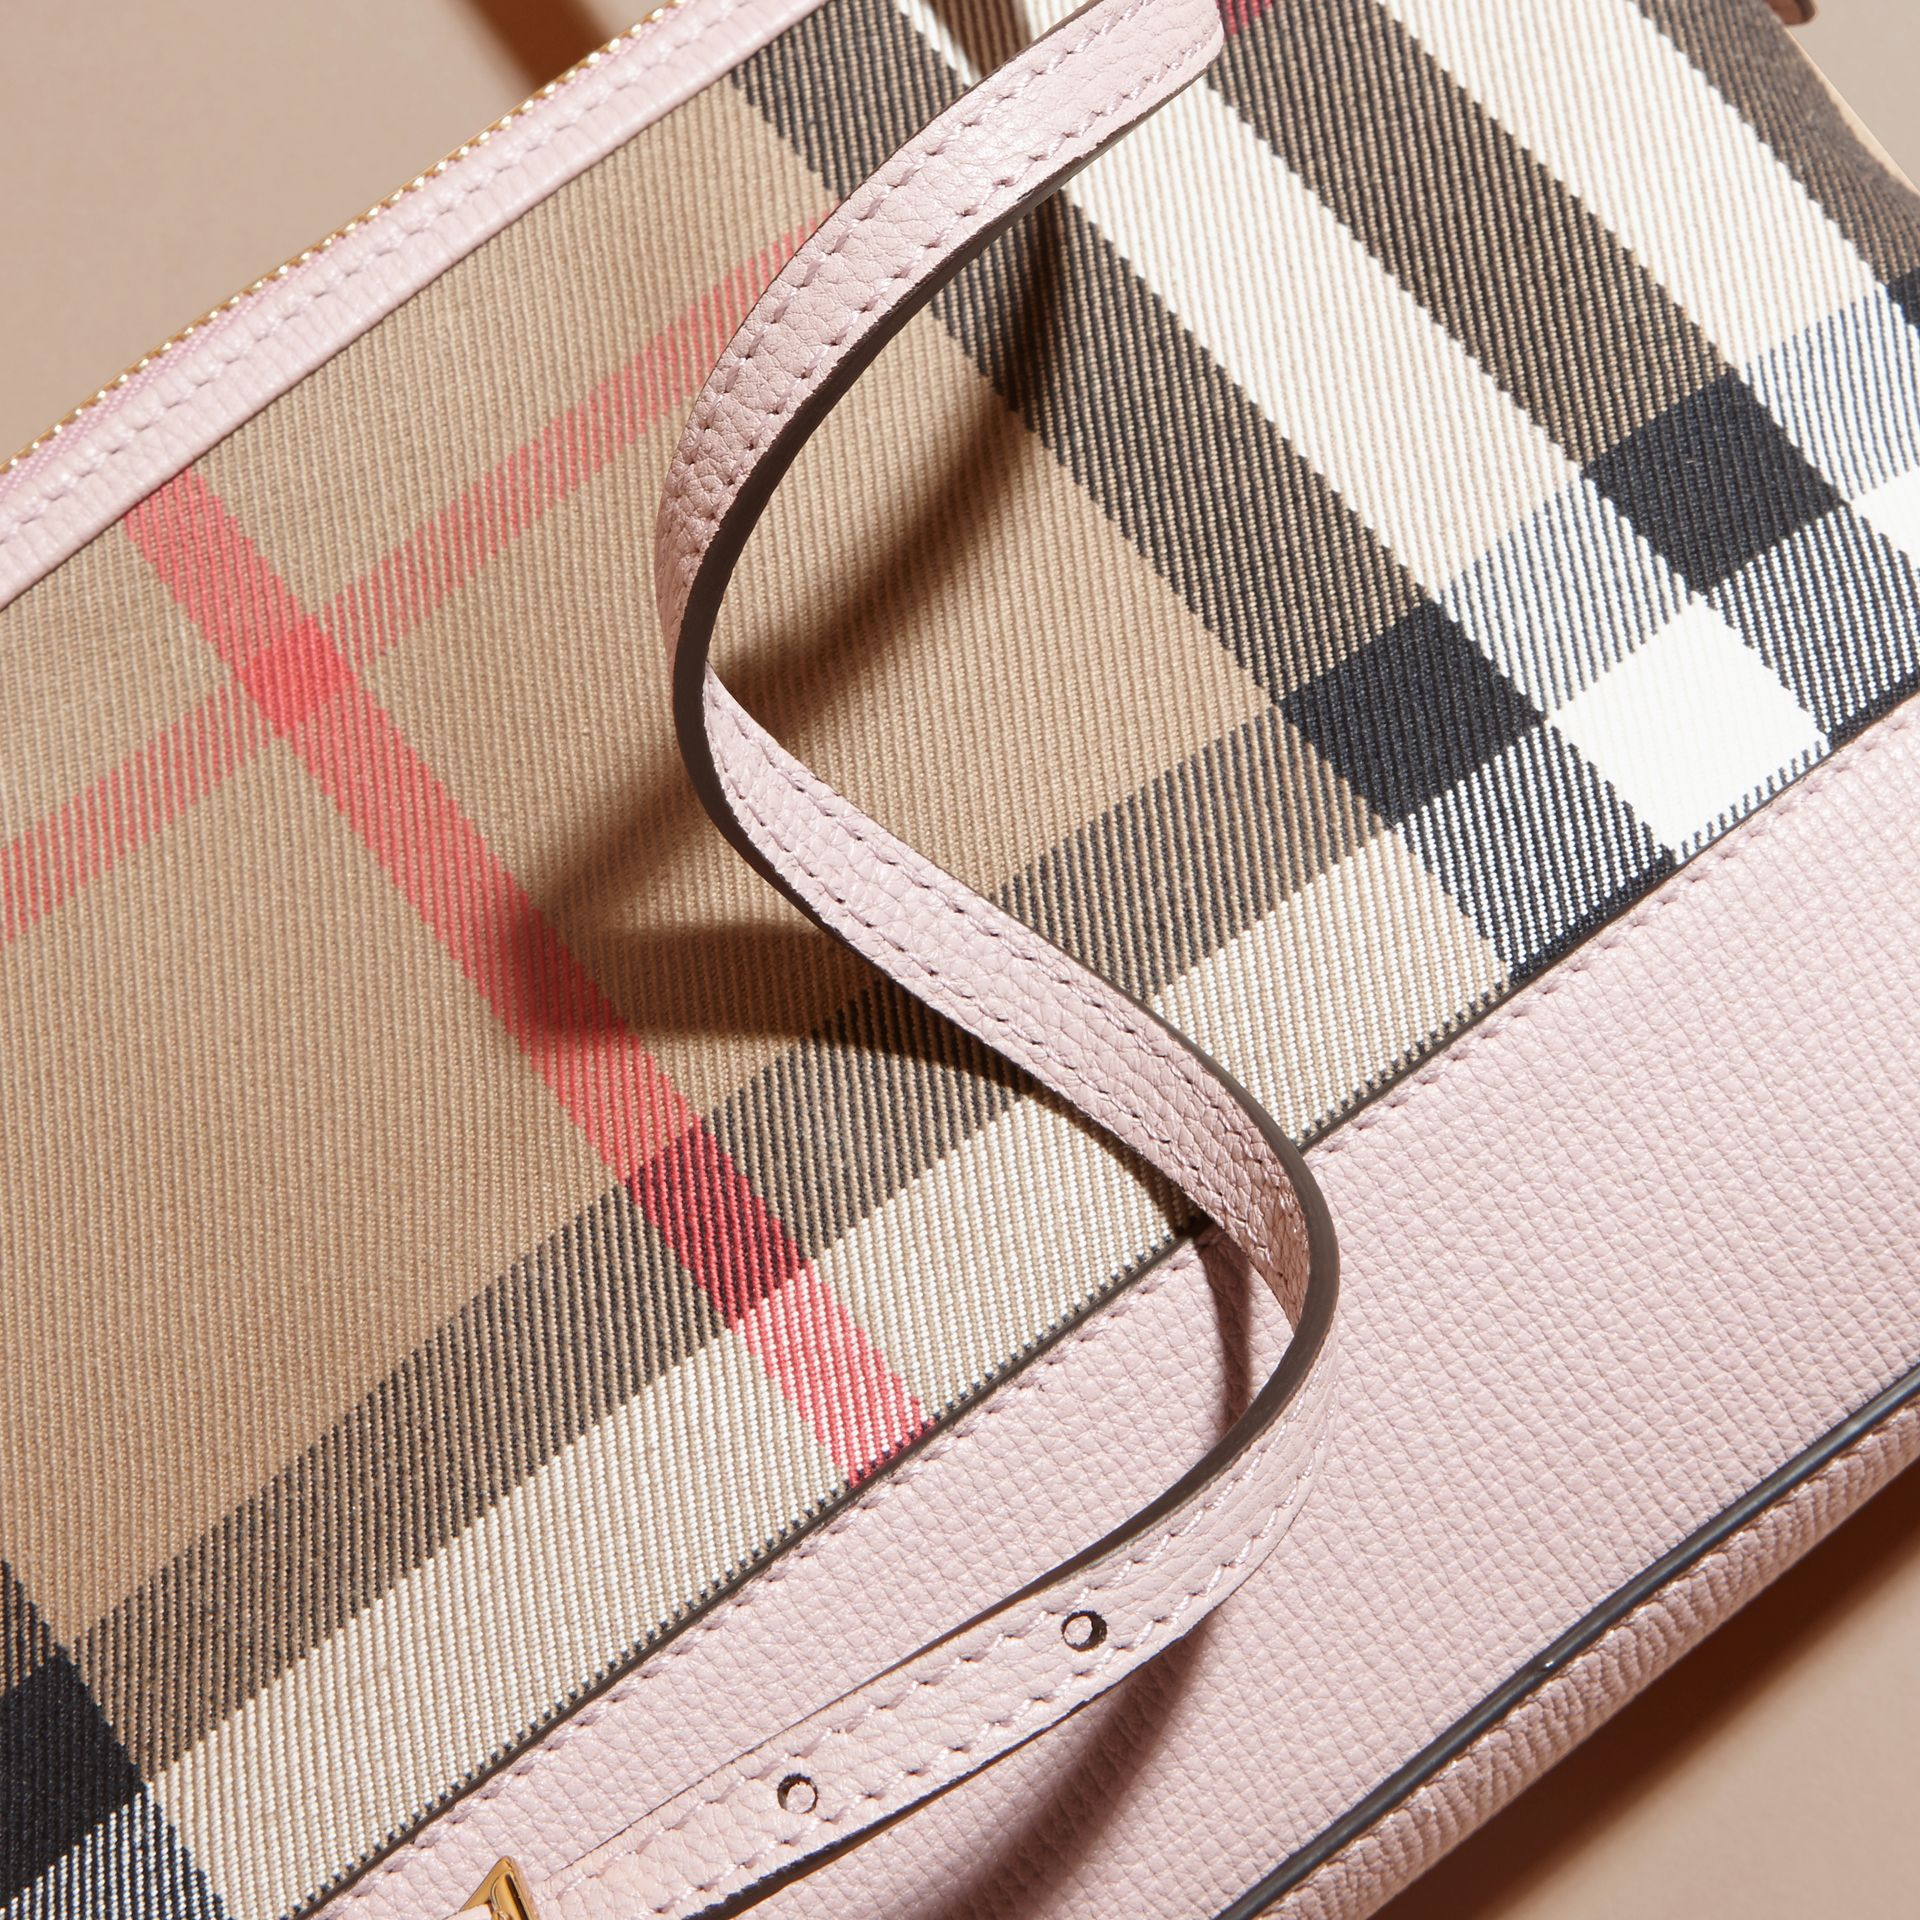 House Check and Leather Clutch Bag in Pale Orchid - Women | Burberry Australia - gallery image 2